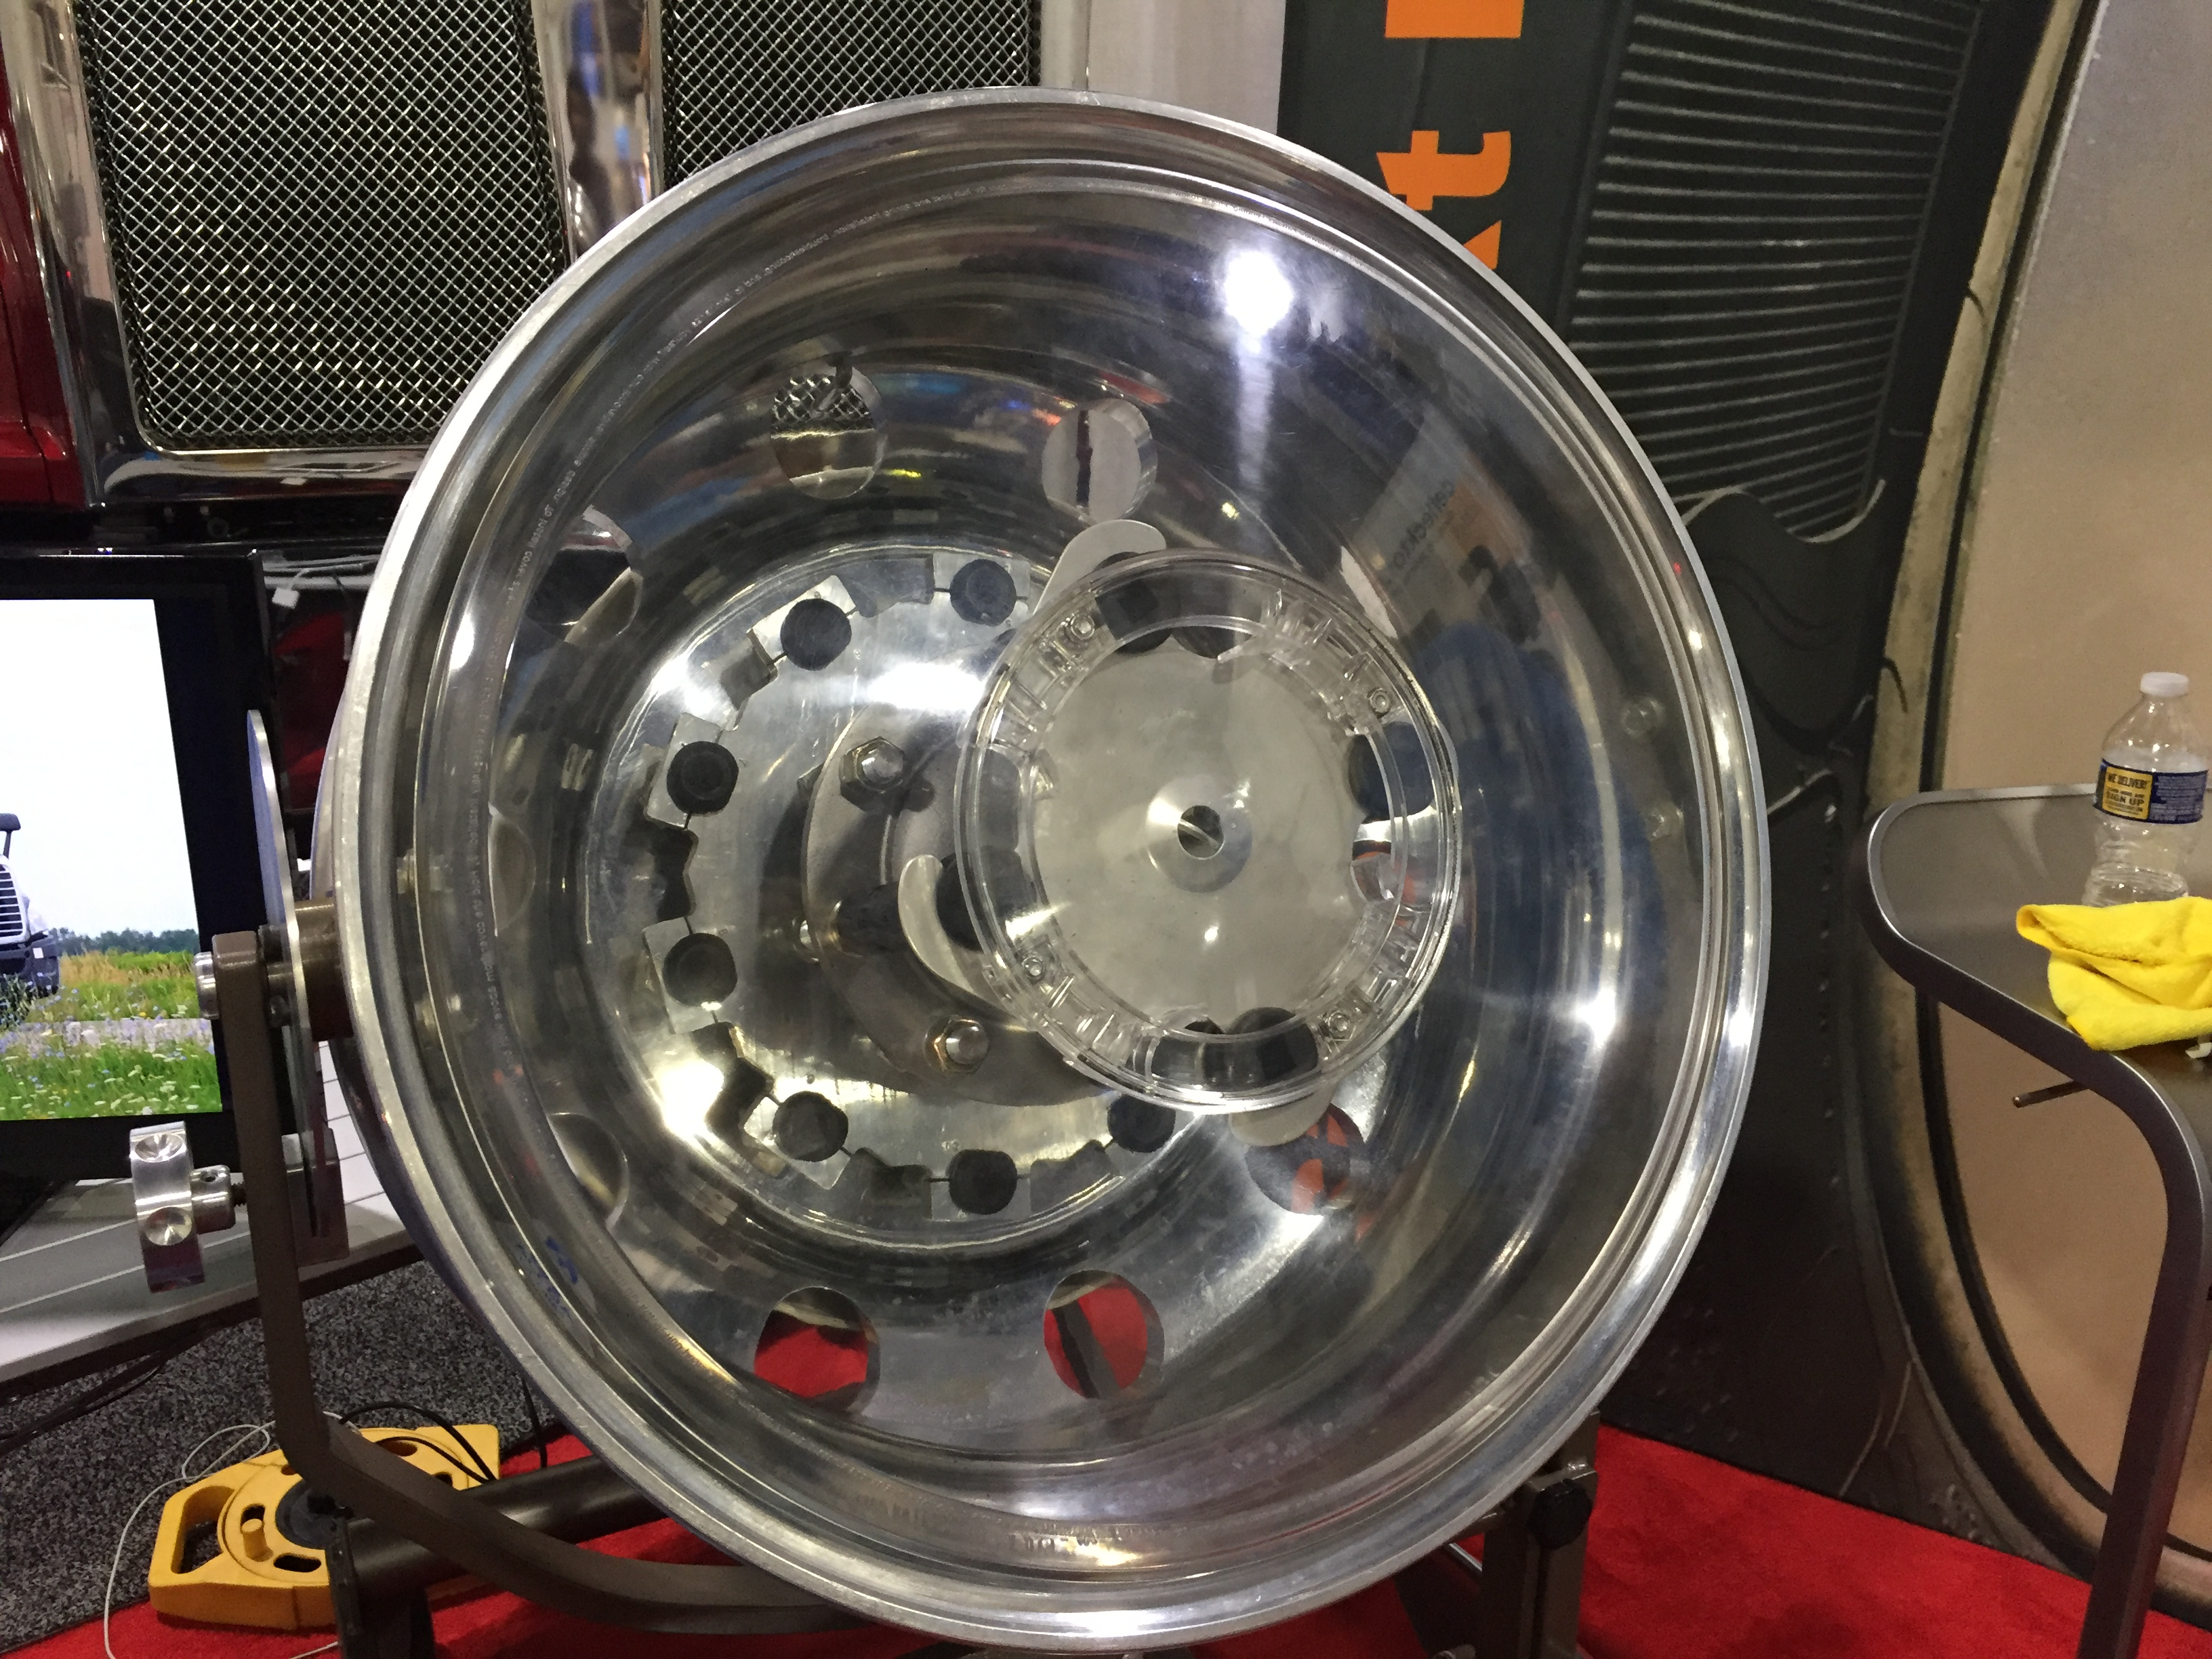 New Wheel Covers Hide Fasteners for Optimized Aerodynamics